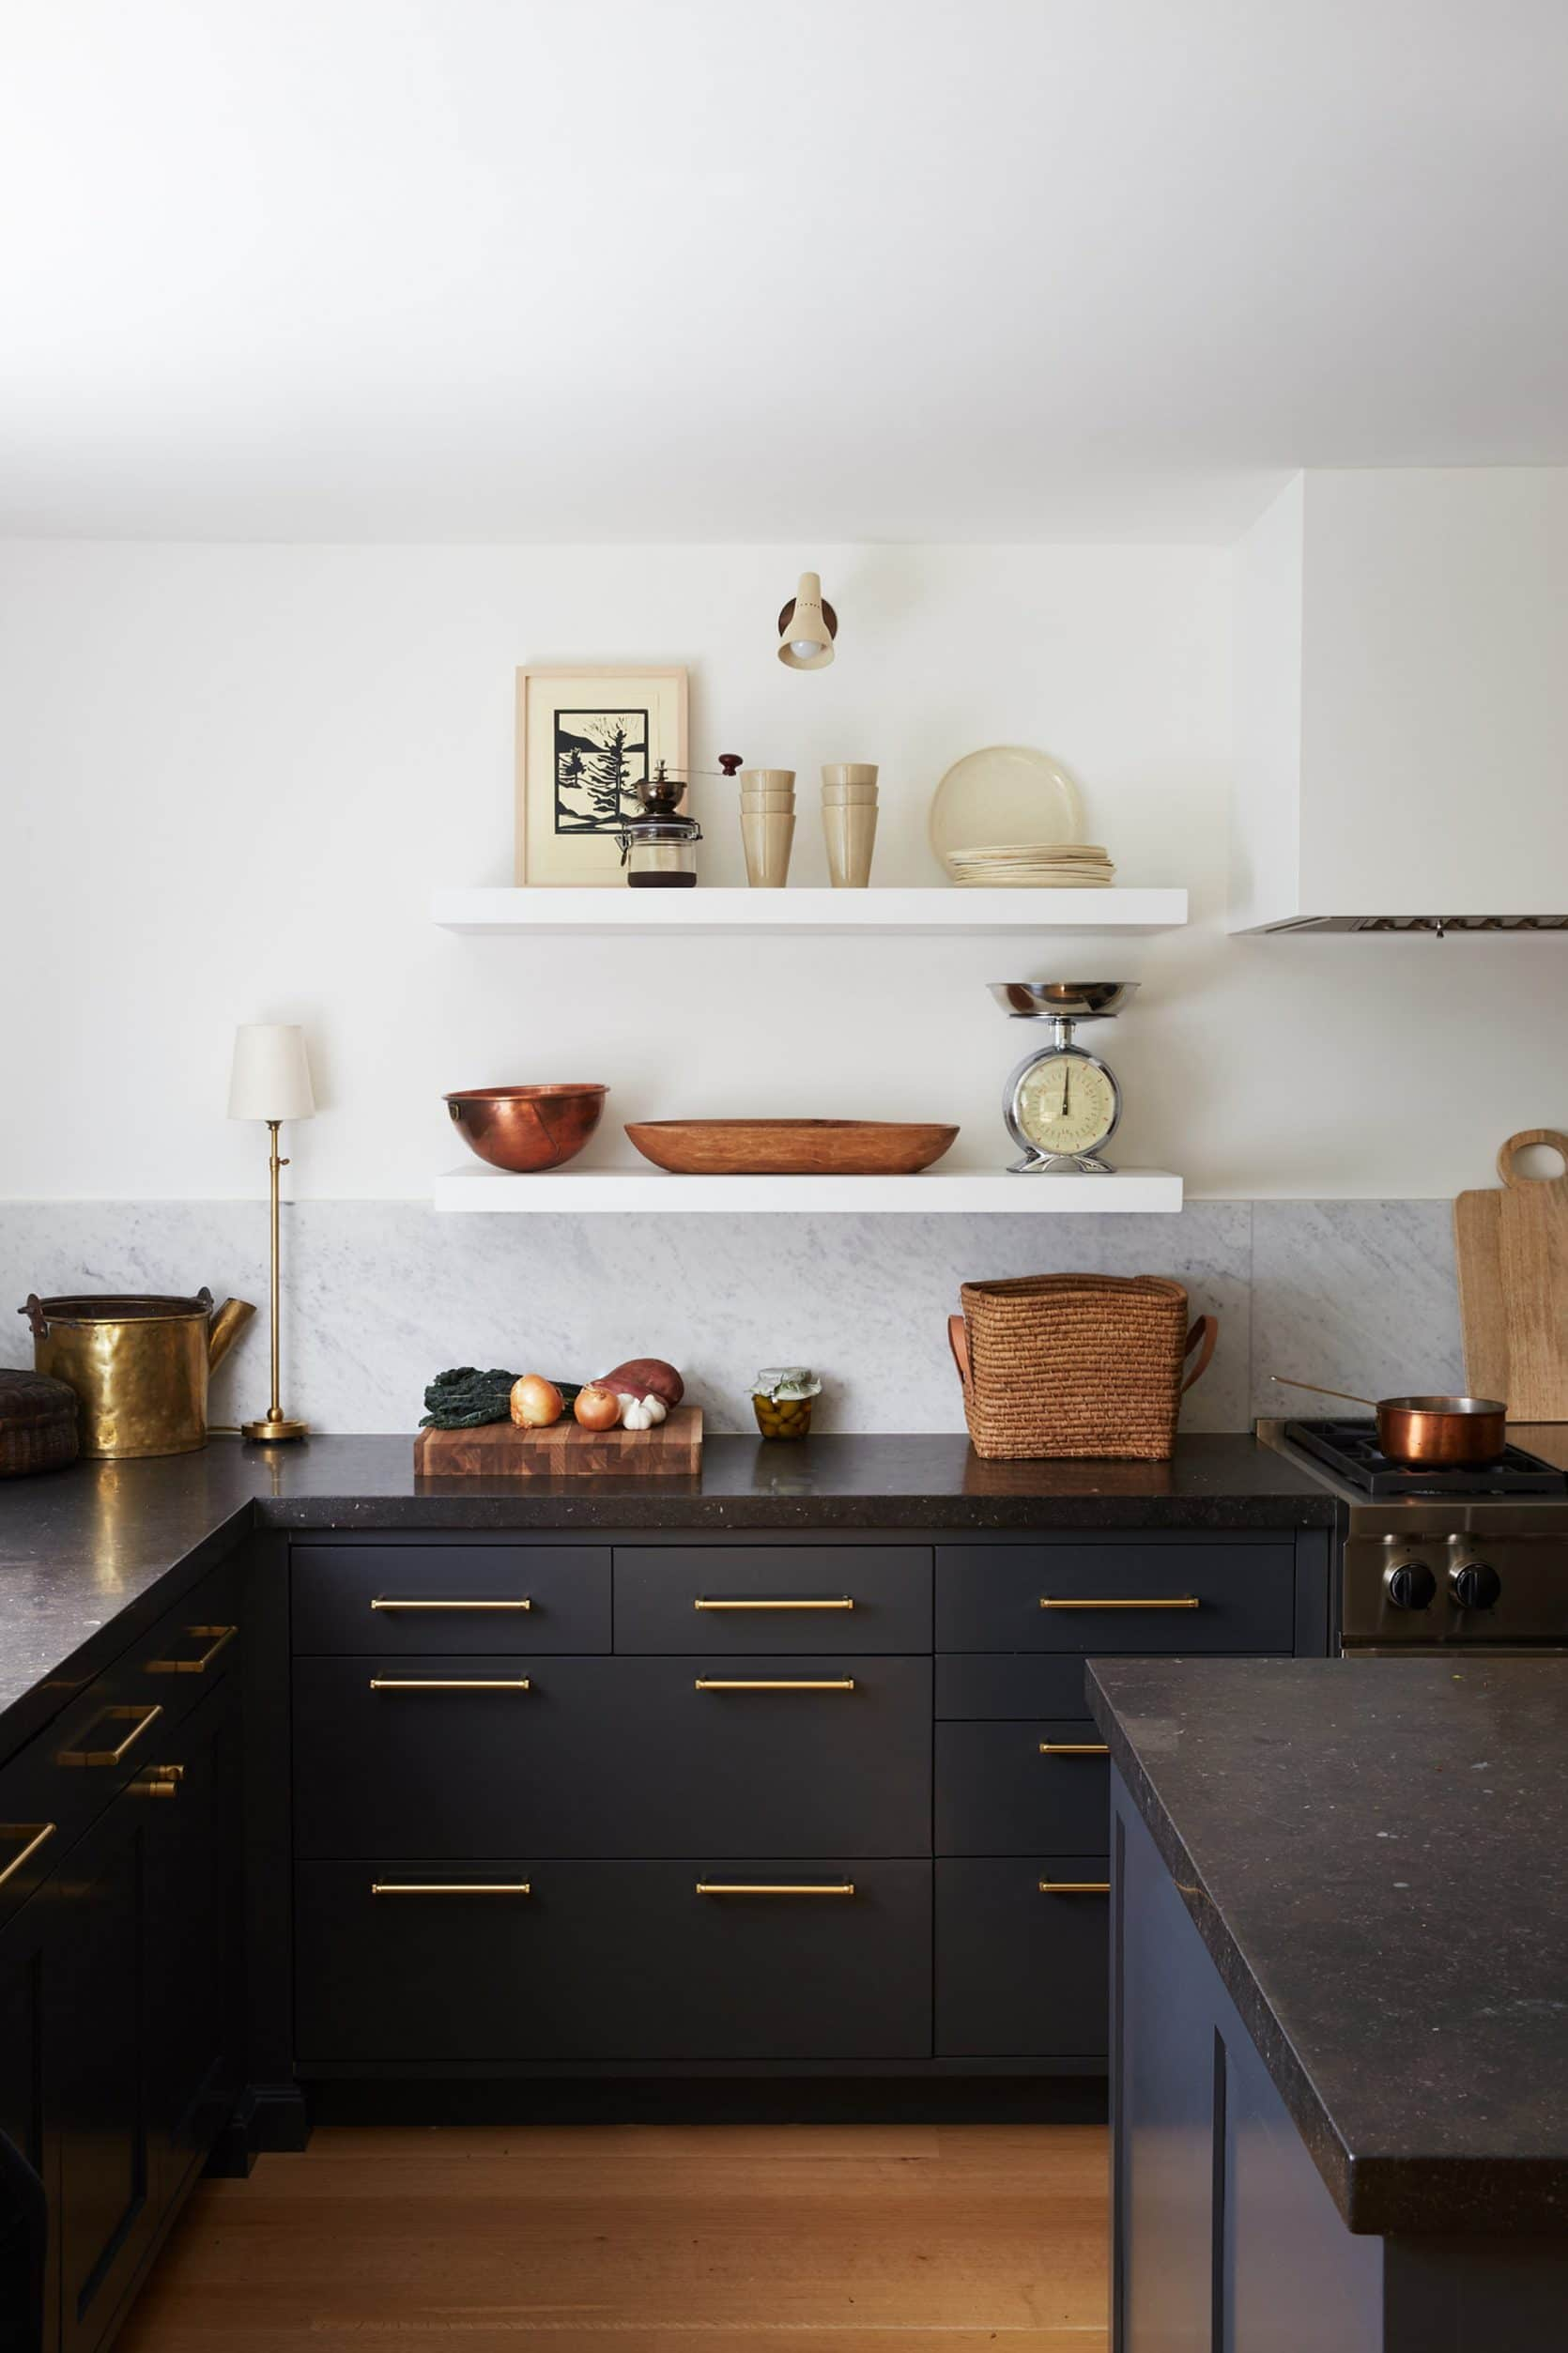 9 Kitchen Trends For 2019 We Re Betting